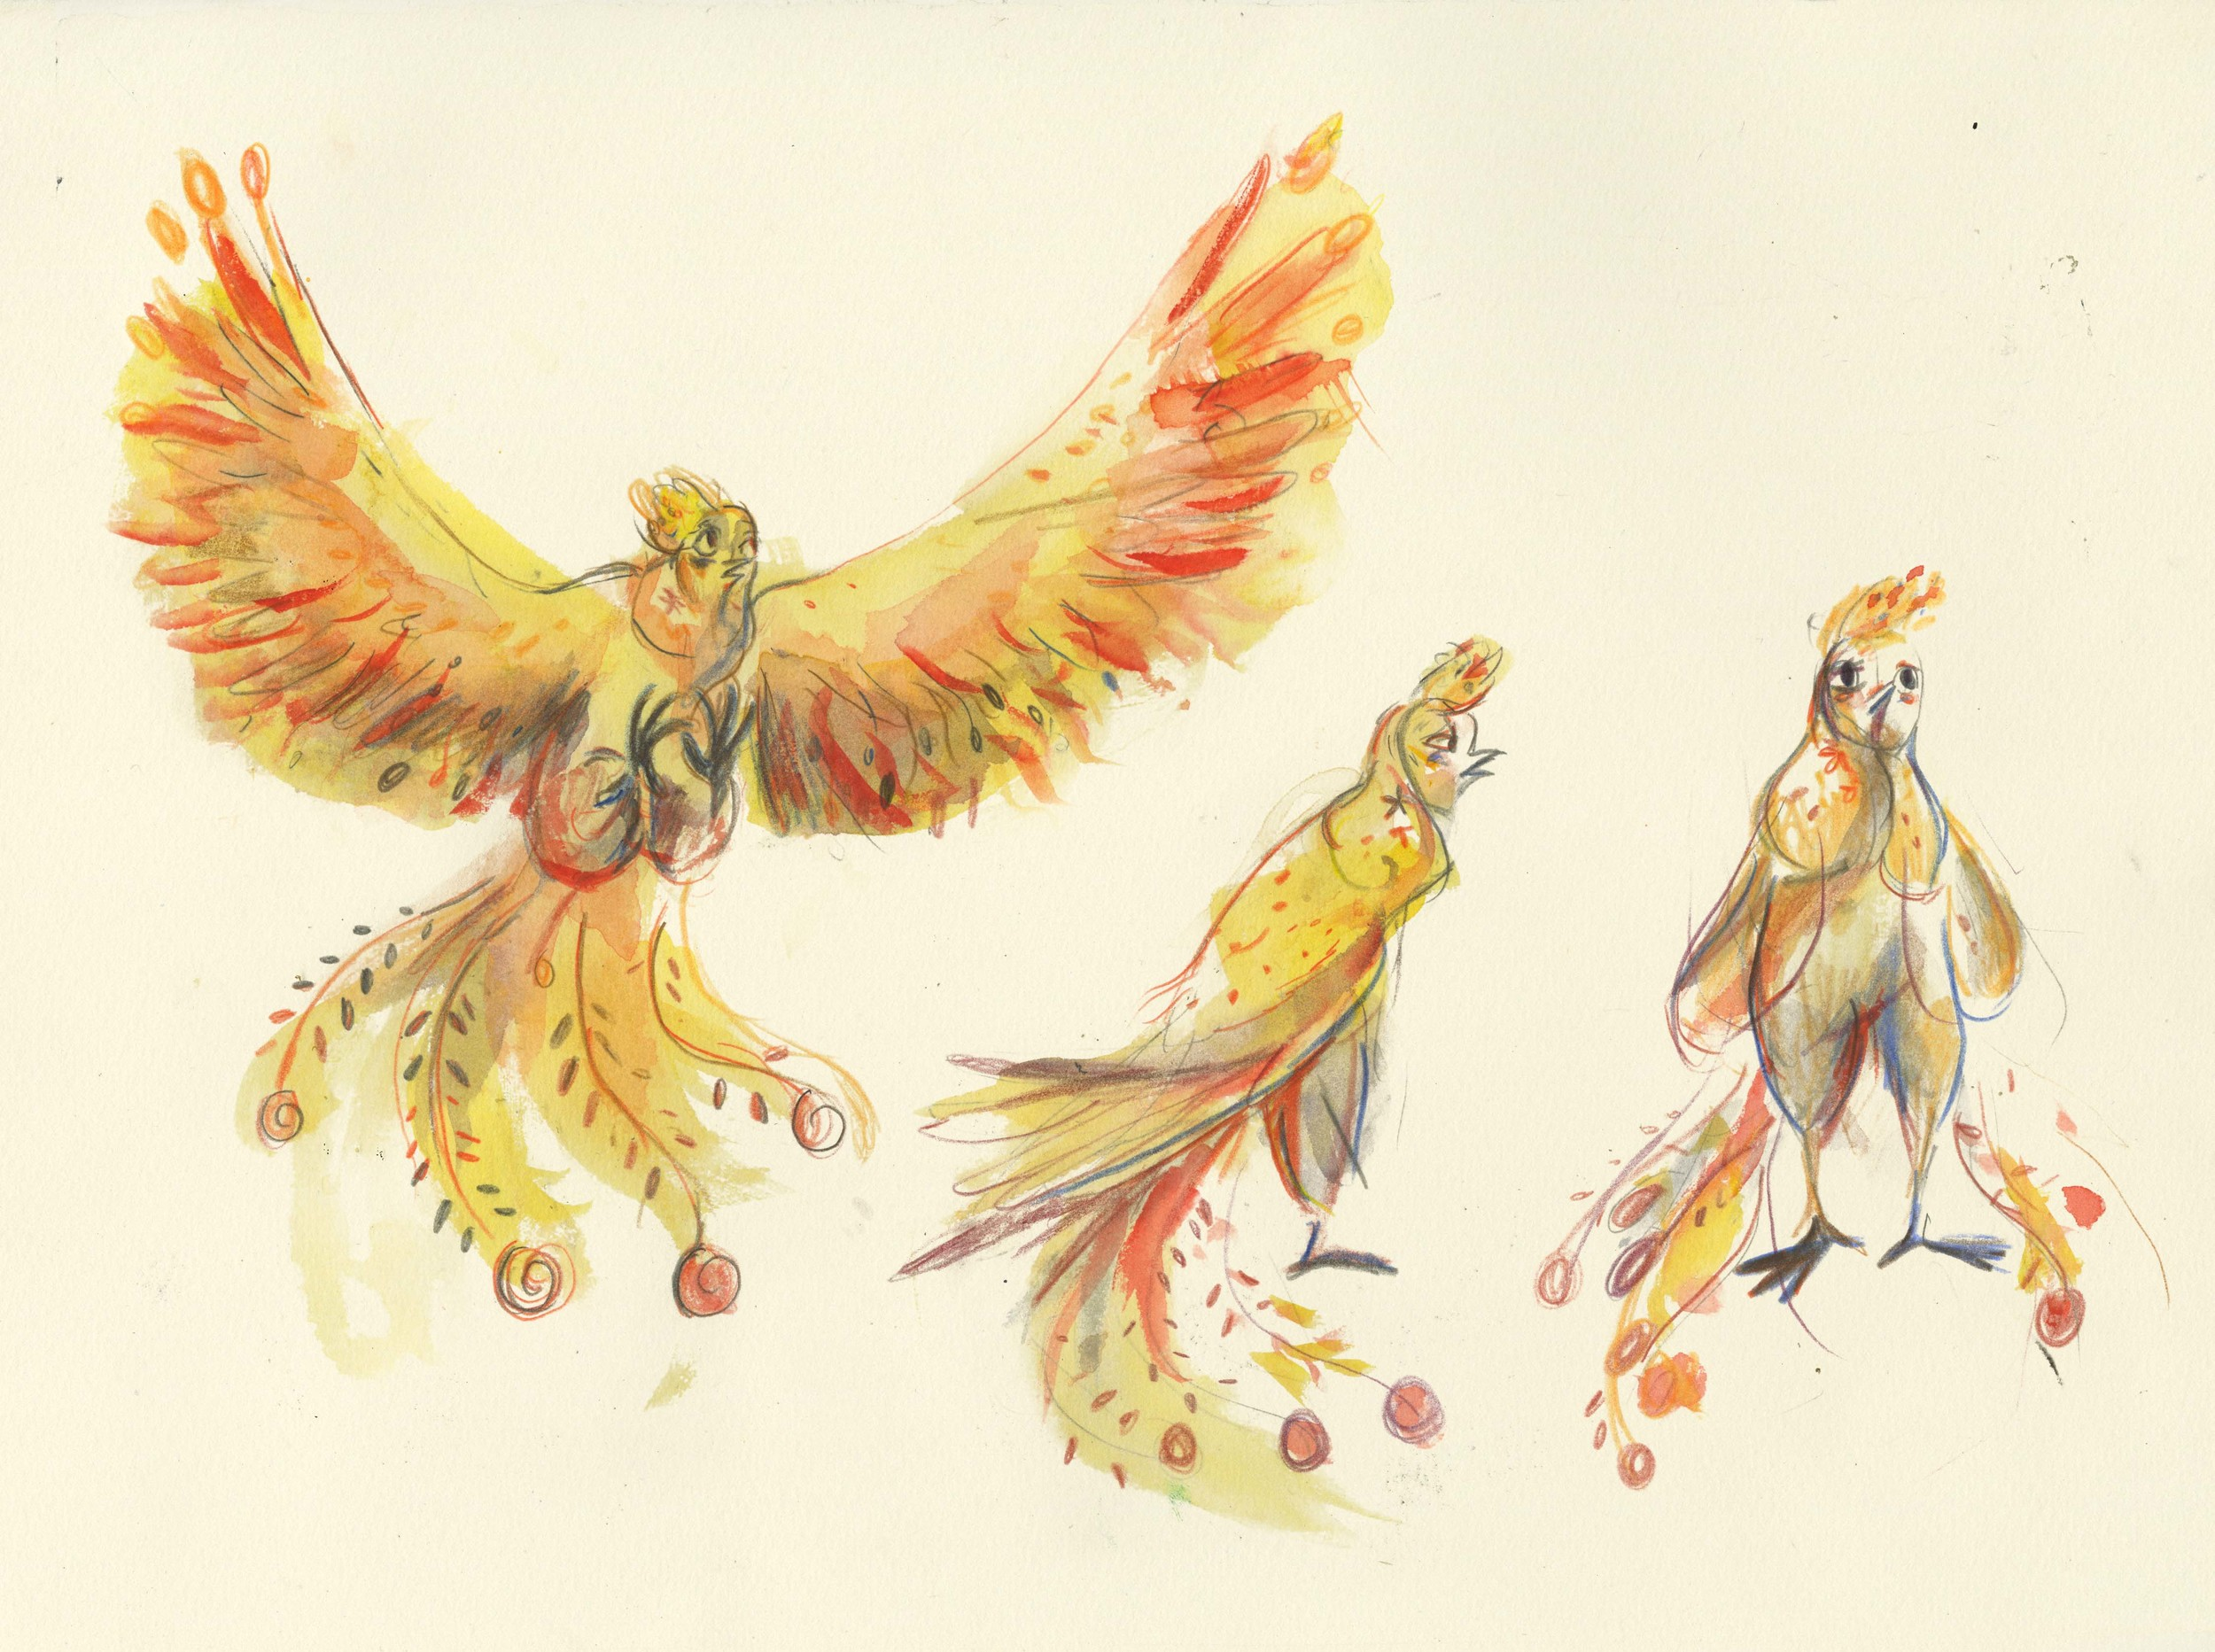 Character designs for the Russian Firebird in 'Ivana and the Firebird'